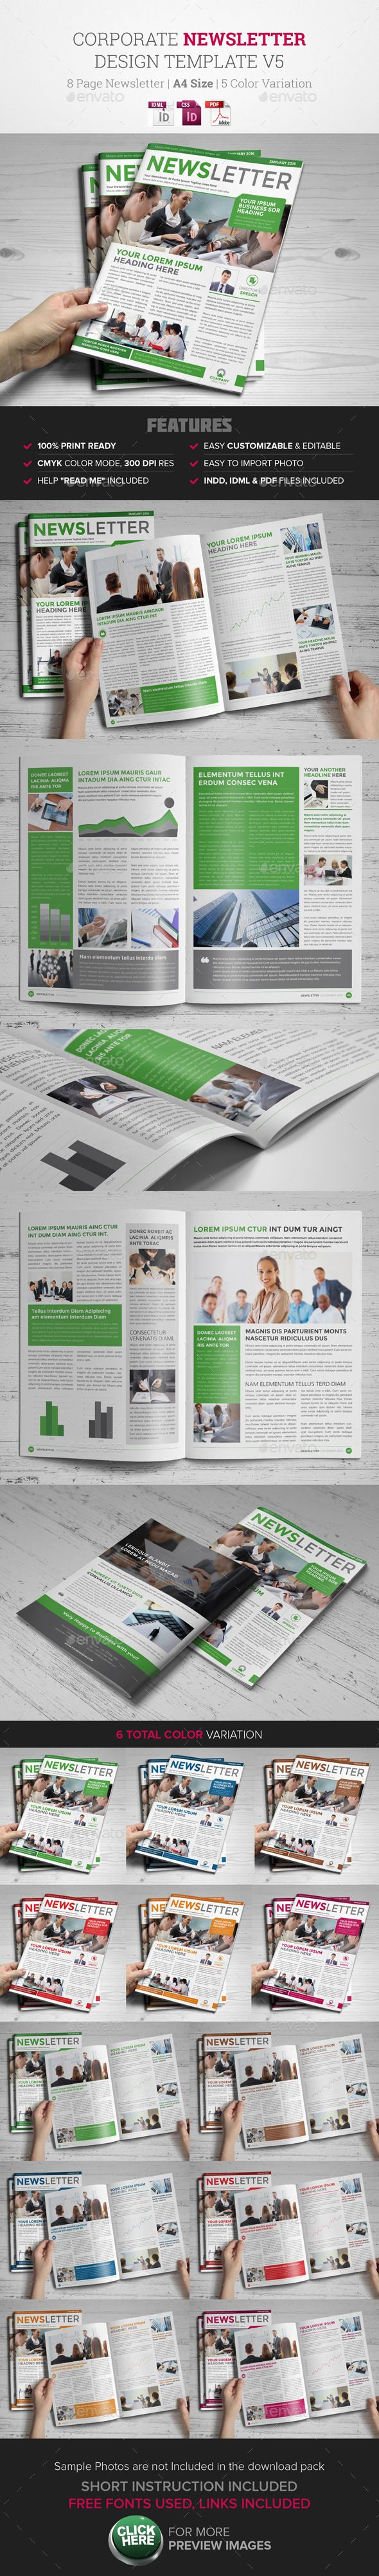 Newsletter Indesign Template v5